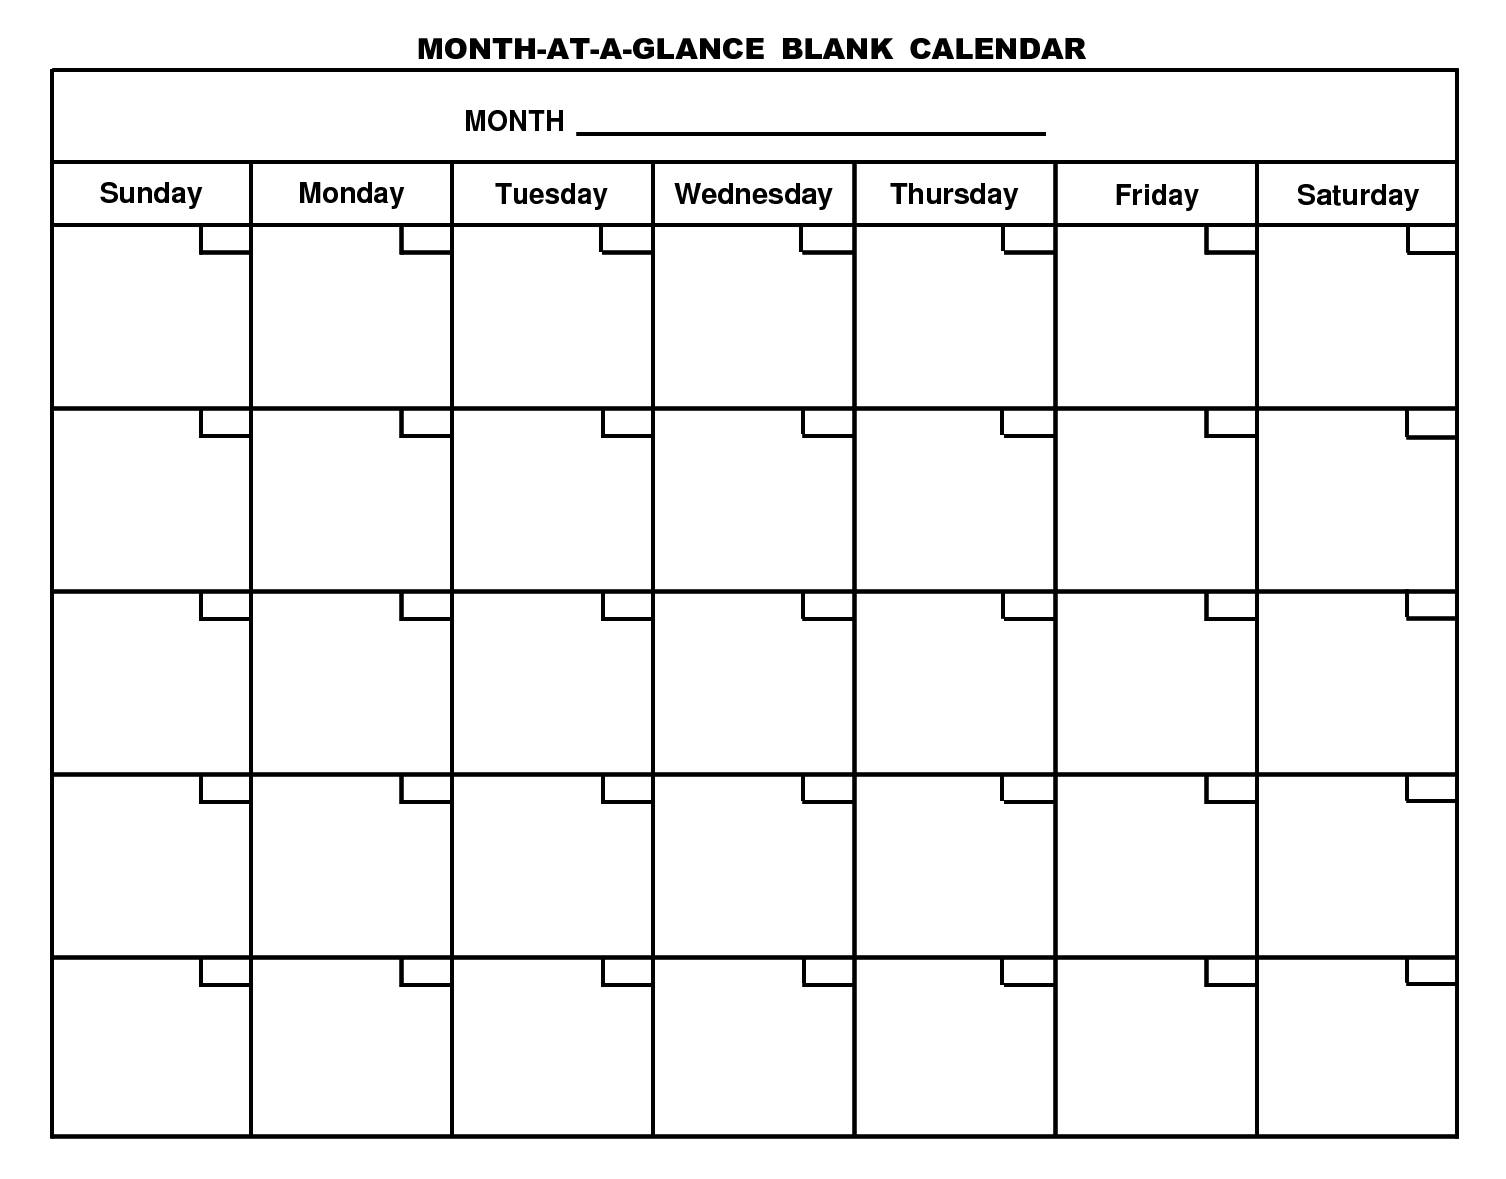 Pin By Stacy Tangren On Work | Printable Blank Calendar-12 Month At A Glance Fill In Template Calendar